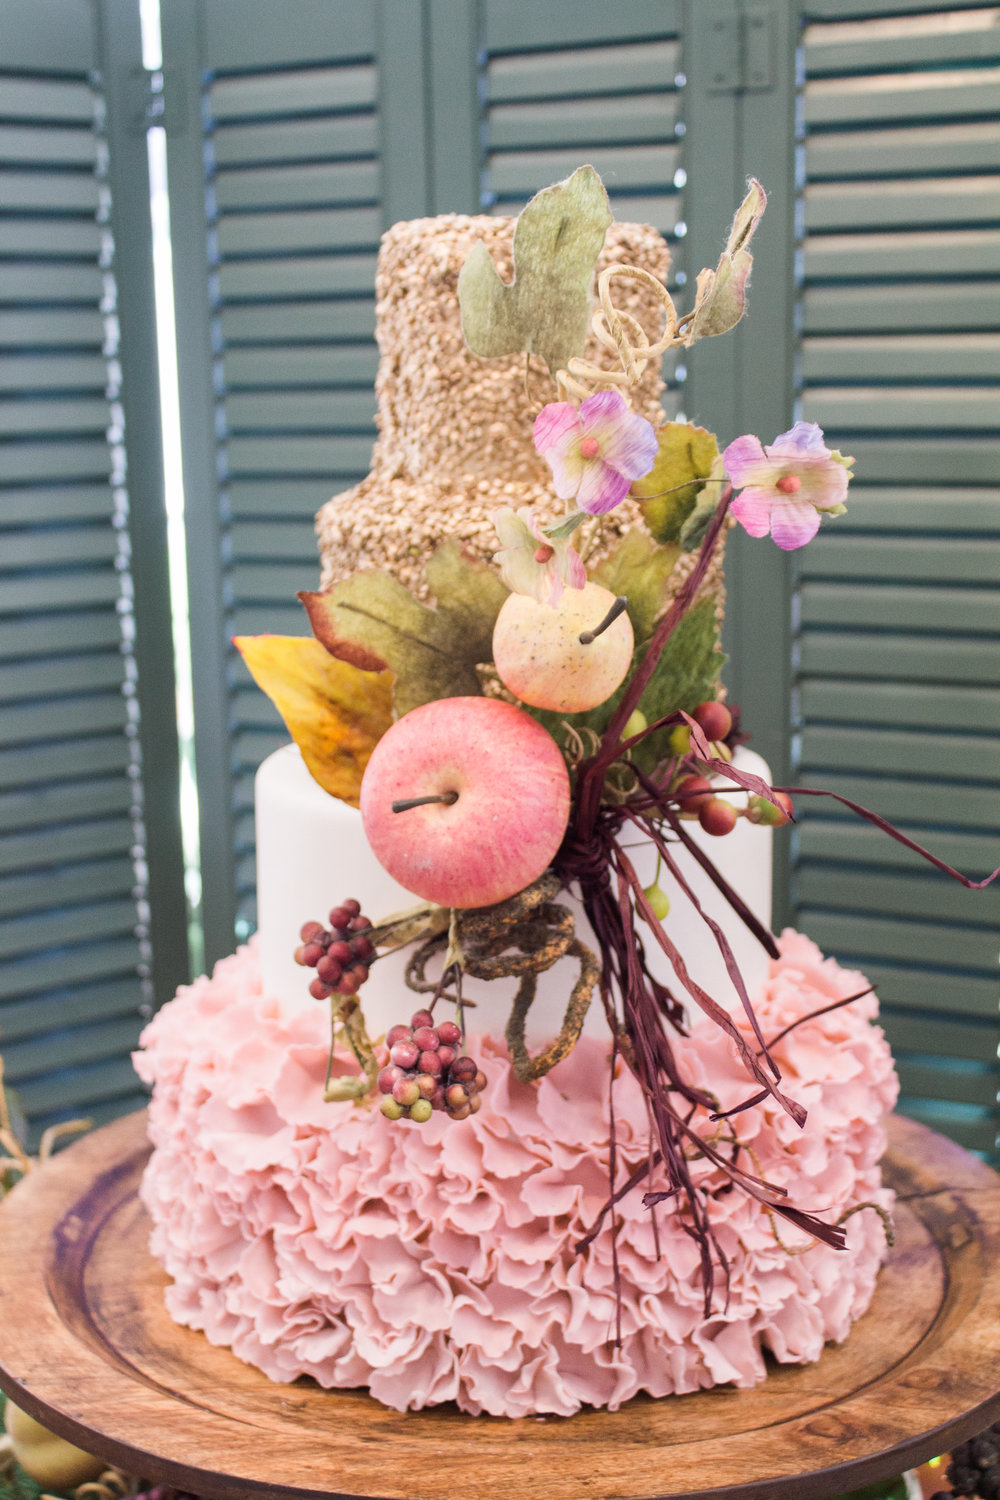 Rustic Fall Wedding Cake with Apples, Pears, Berries, Blush Pink, Gold and Ruffles at The Mackey House in Savannah, GA | Savannah, Charleston, Greenville Wedding Planners Scarlet Plan & Design